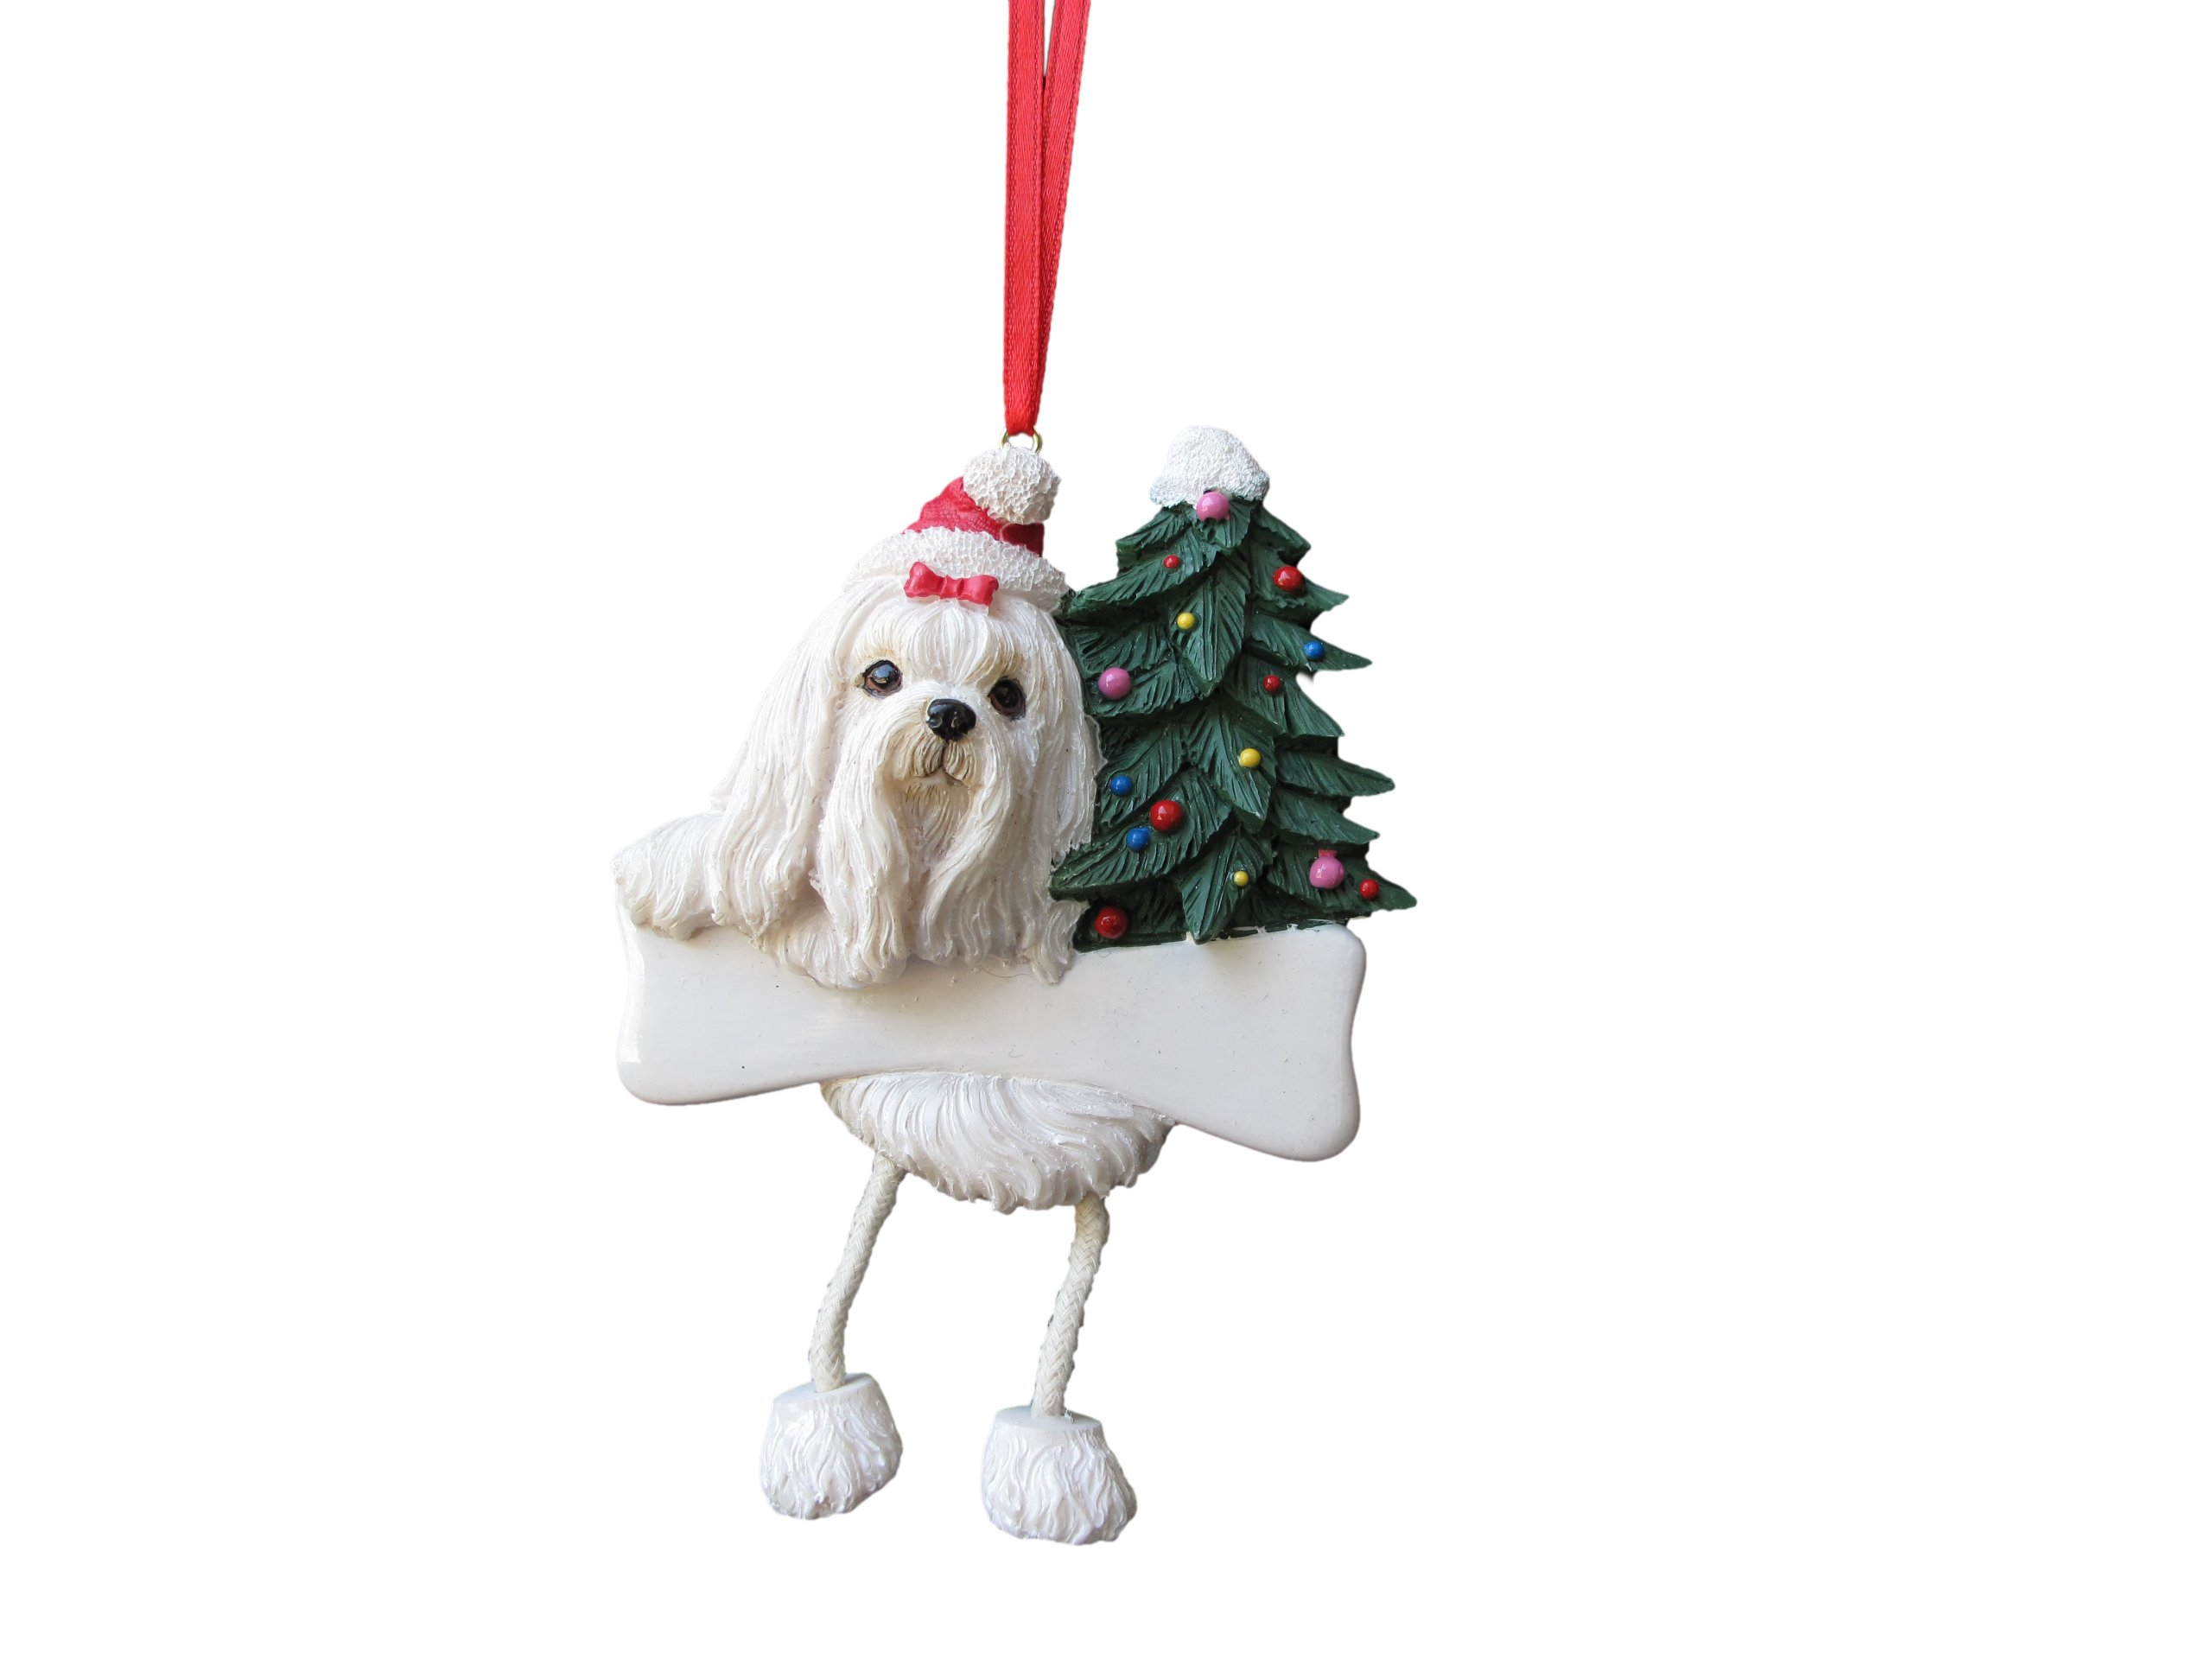 Maltese christmas ornaments - Maltese Ornament With Unique Dangling Legs Hand Painted And Easily Personalized Christmas Ornament